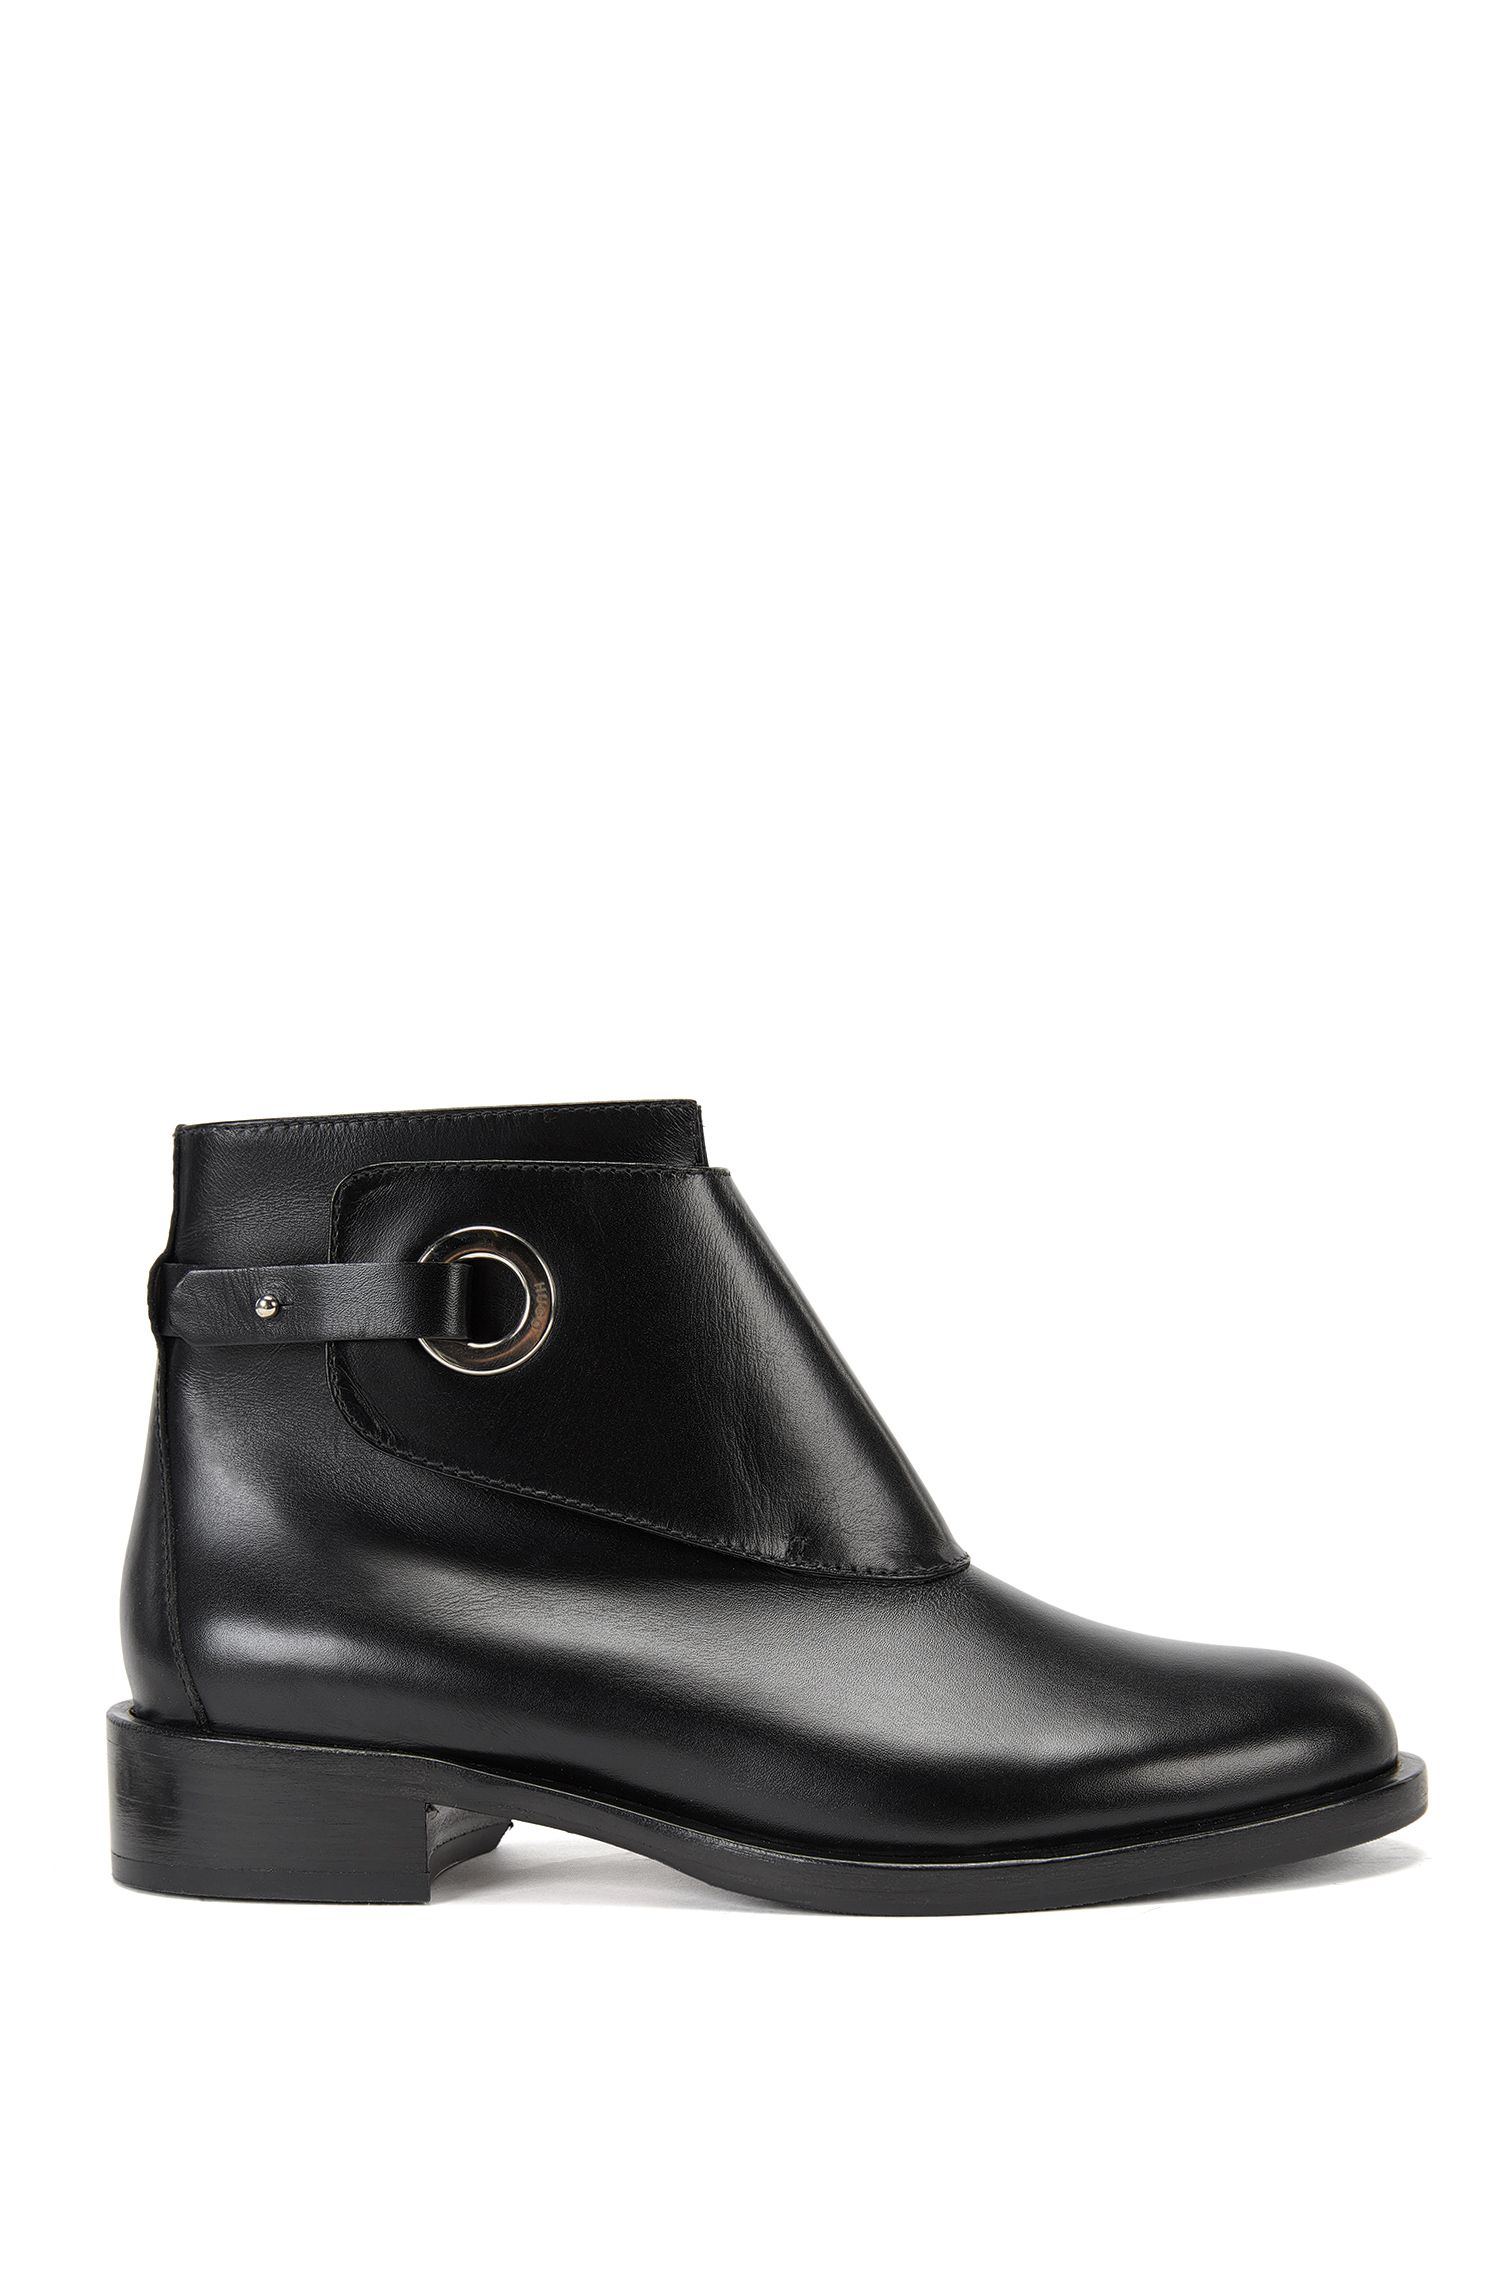 Leather Chelsea boots with porthole closure